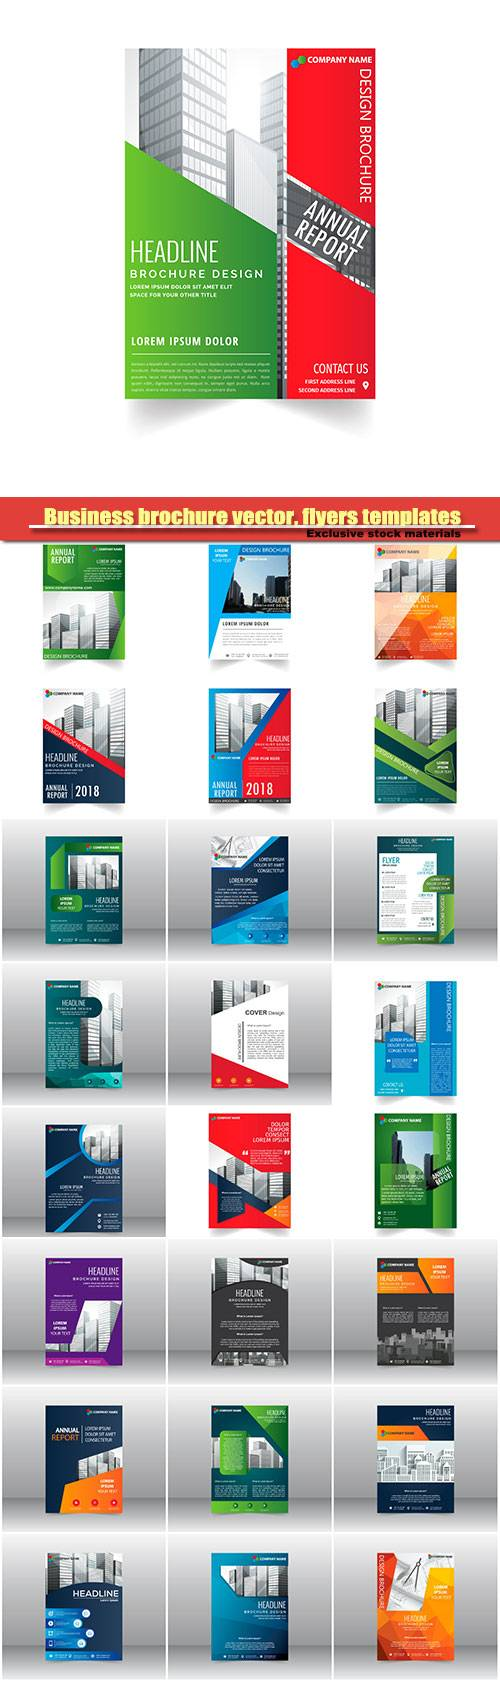 Business brochure vector, flyers templates #14